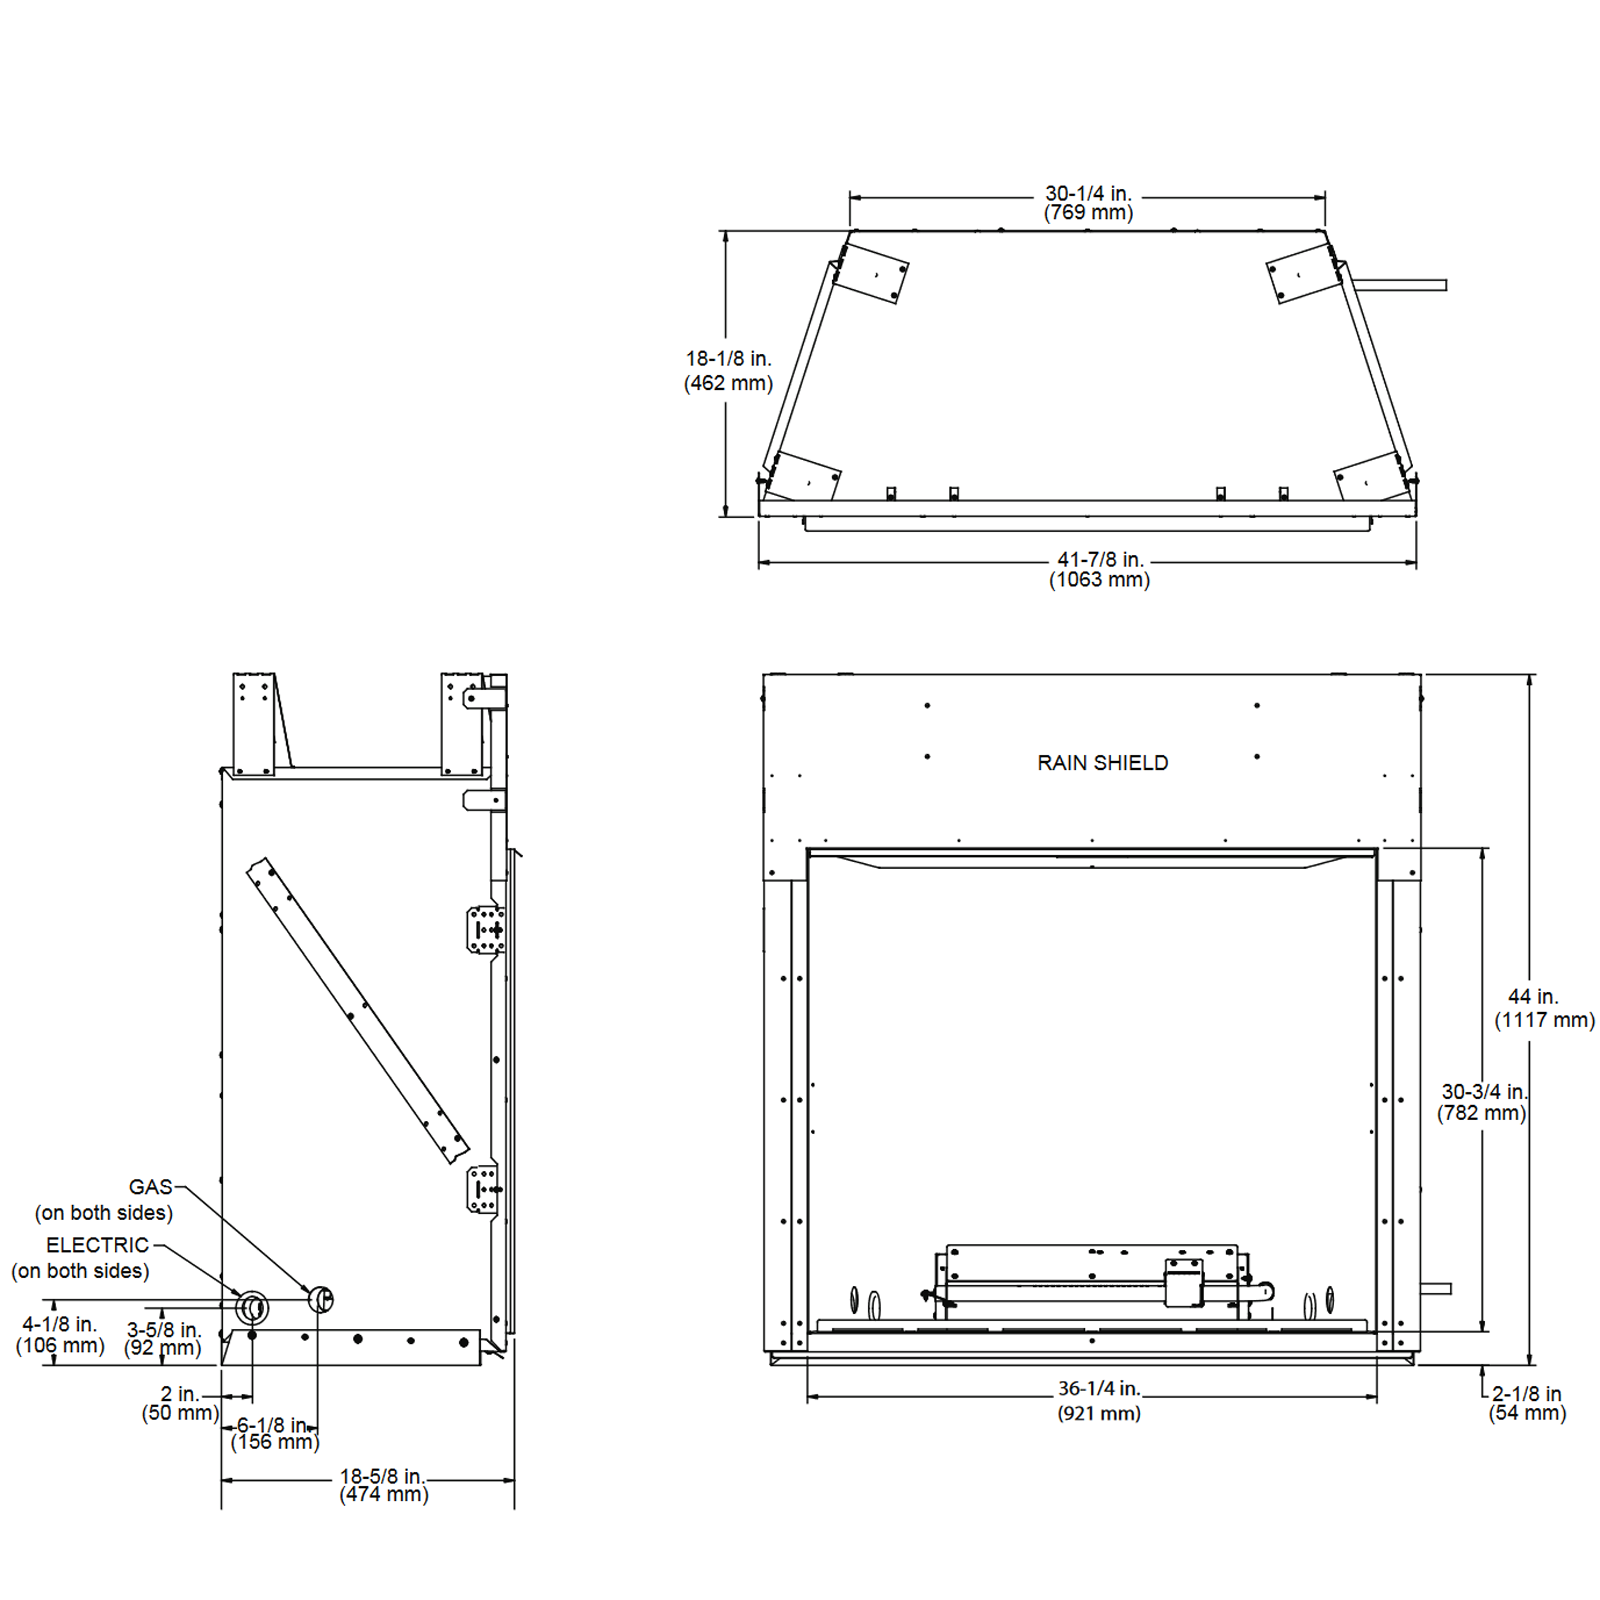 ODCOUG-36 Technical Drawing 1